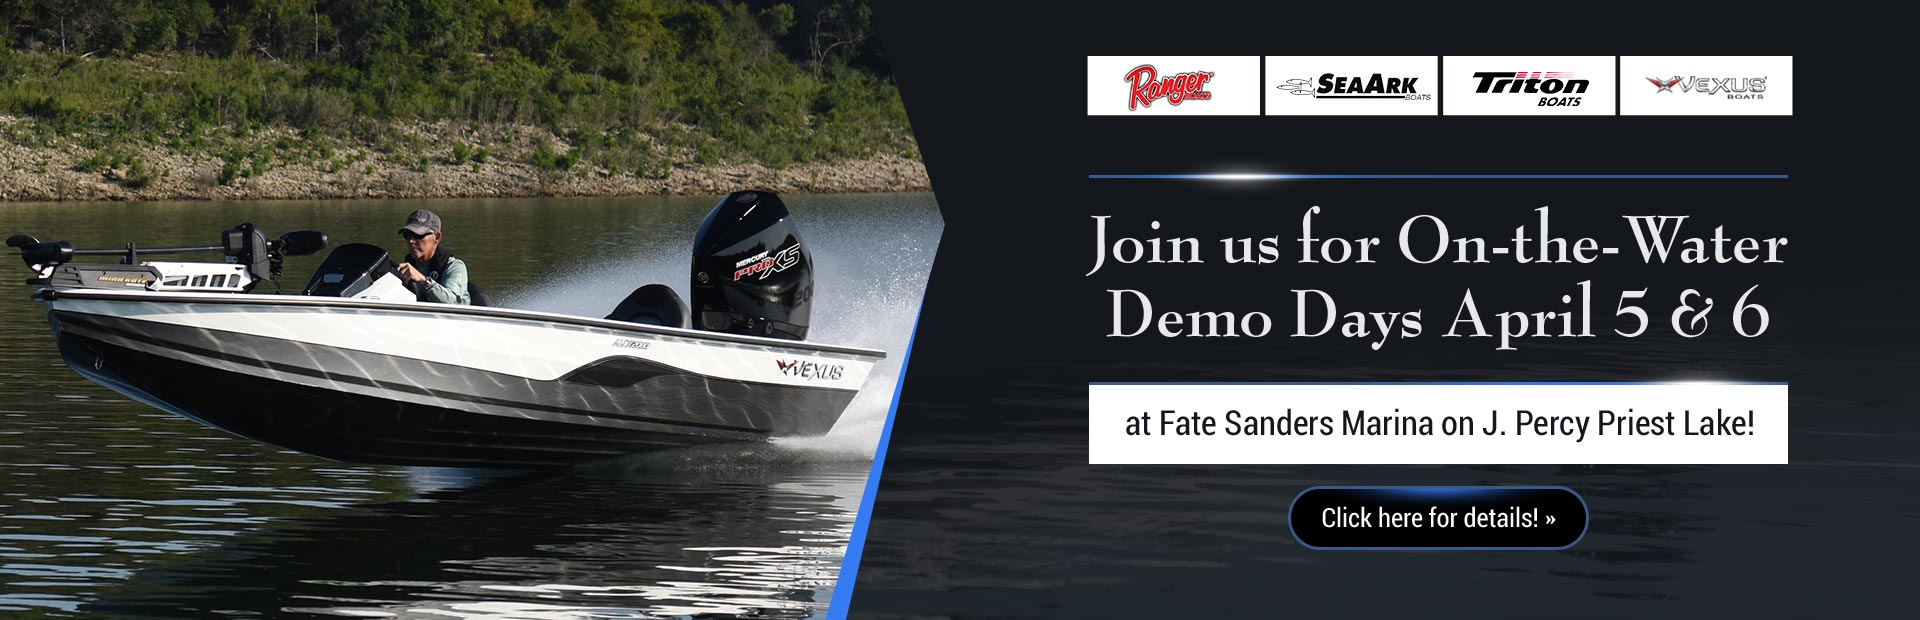 Join Us for On-the-water Demo Days April 5 & 6 at Fate Sanders Marina on J. Percy Priest Lake! Click